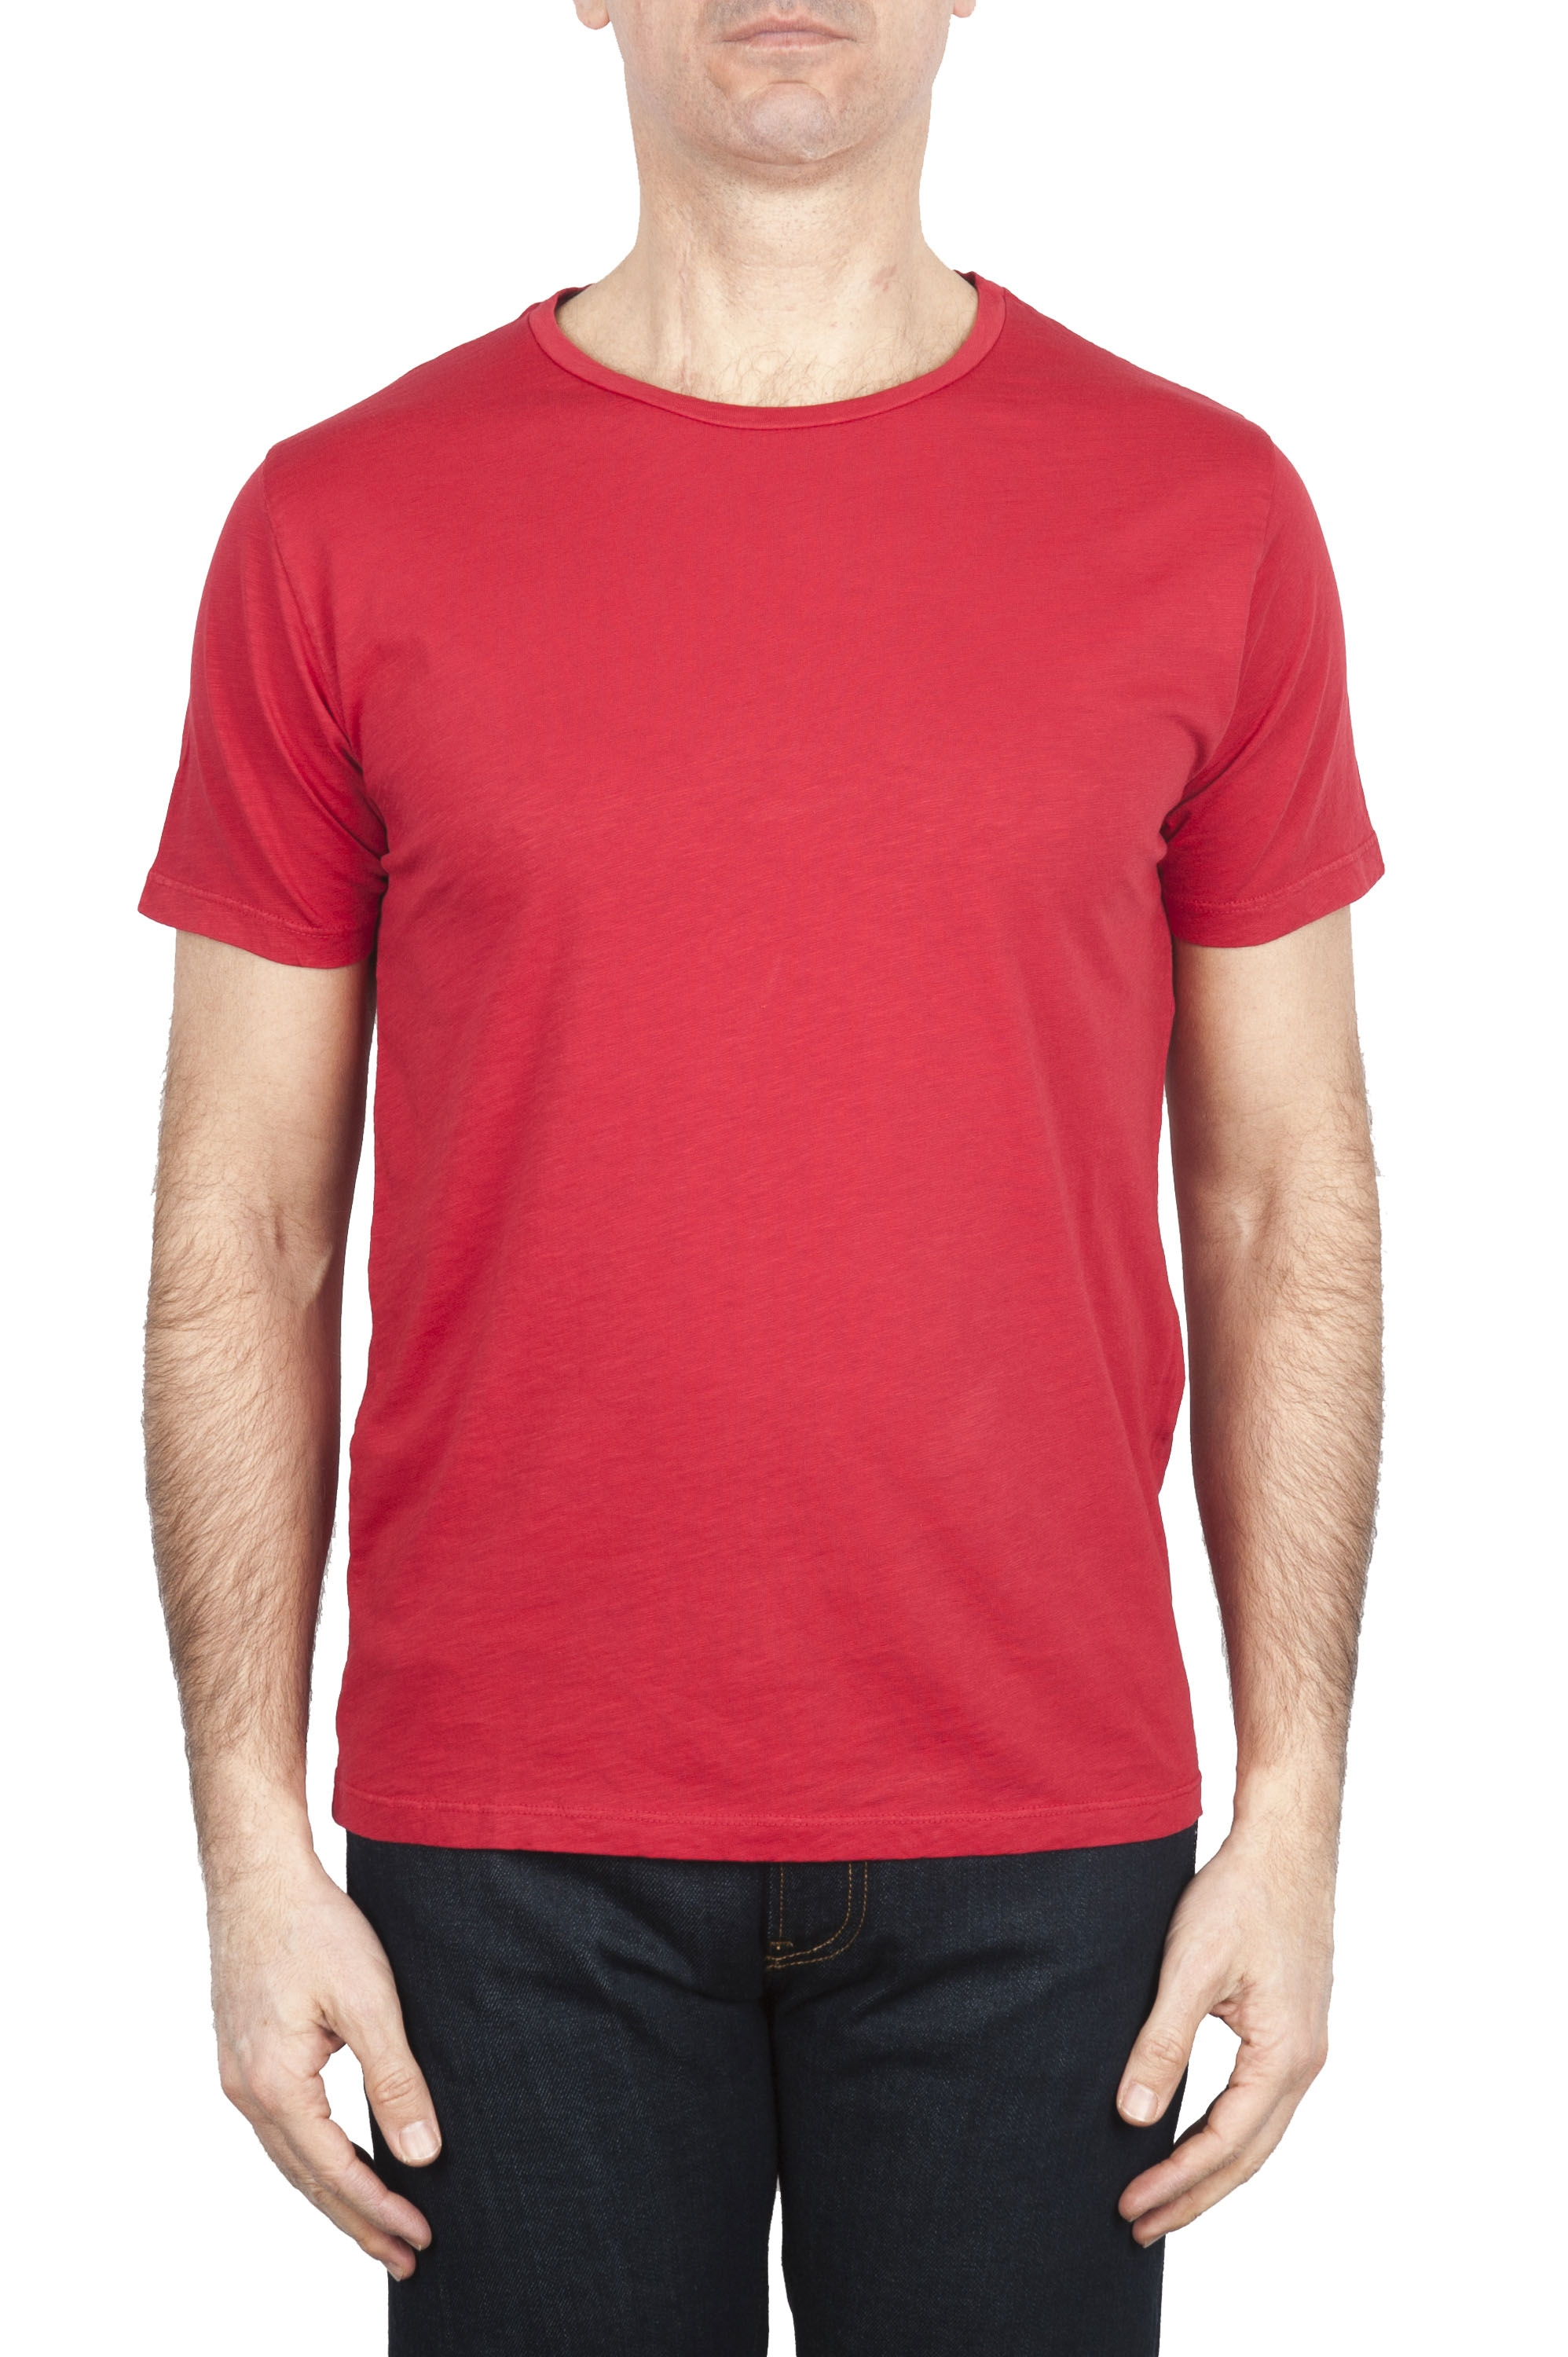 SBU 01647_19AW Flamed cotton scoop neck t-shirt red 01